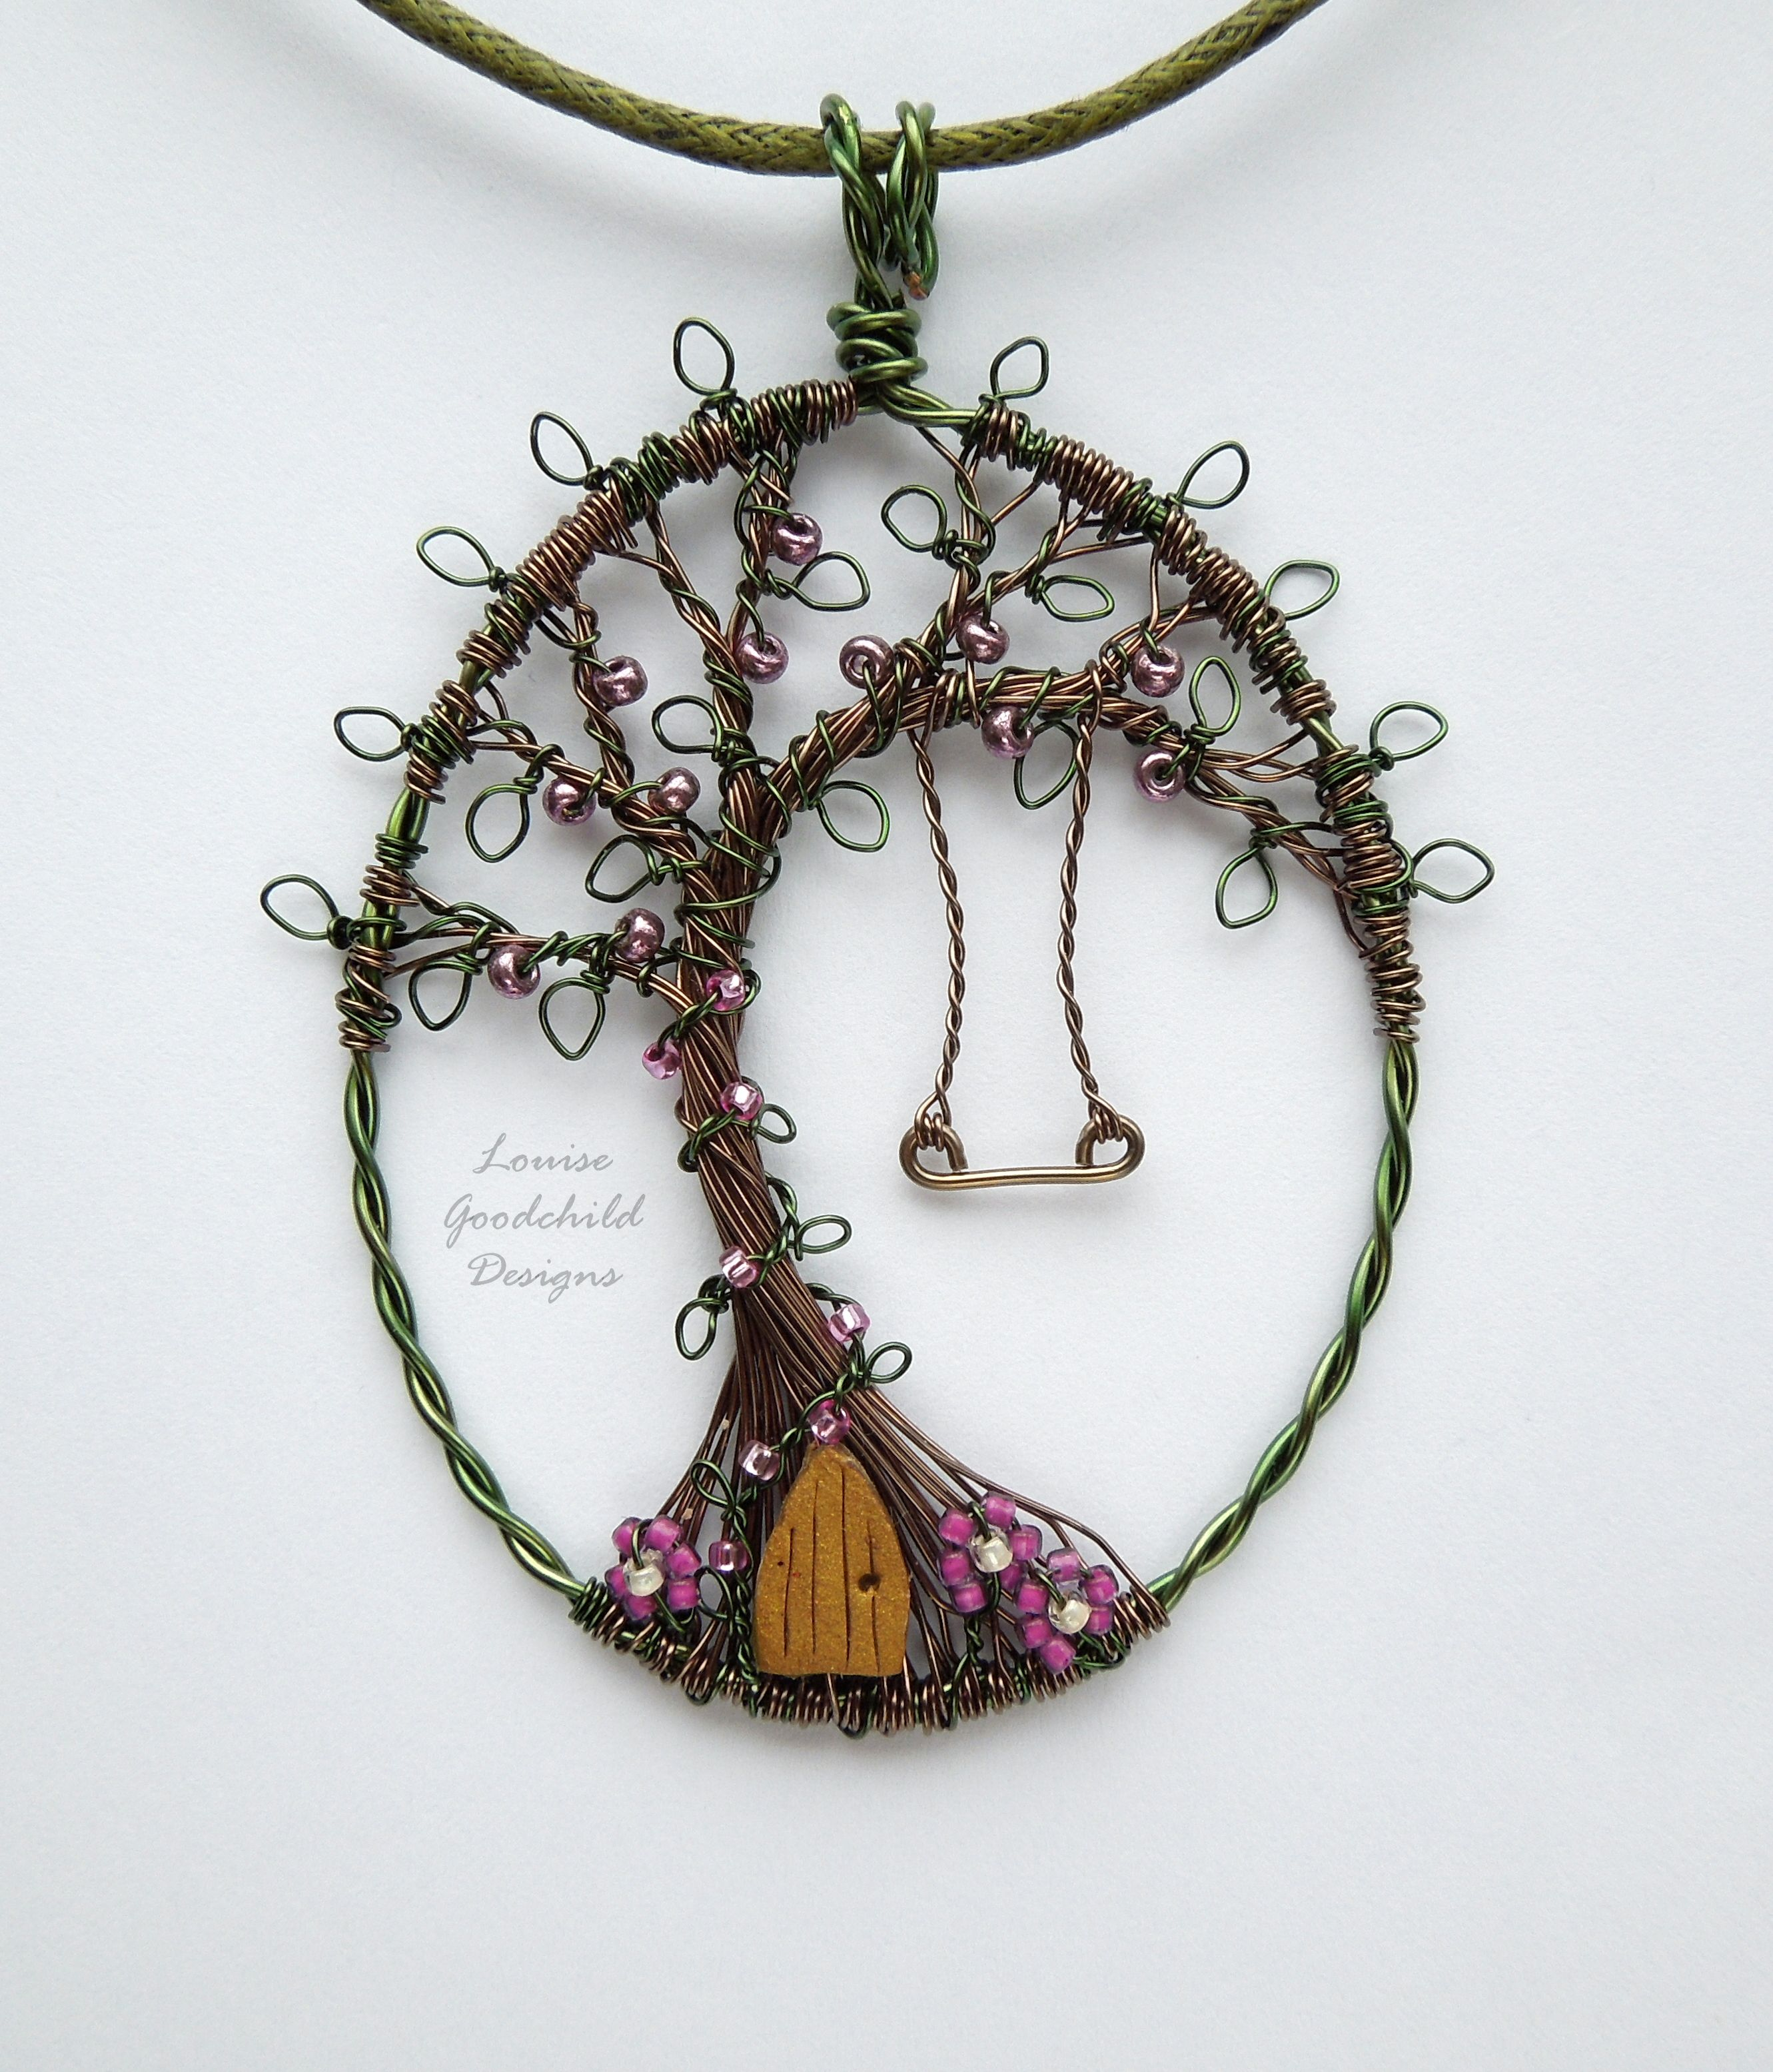 Tree House Pendant Original Wire With Swing And Fairy Door Copper Wiring In Houses Etsycom Uk Shop Louisegoodchild